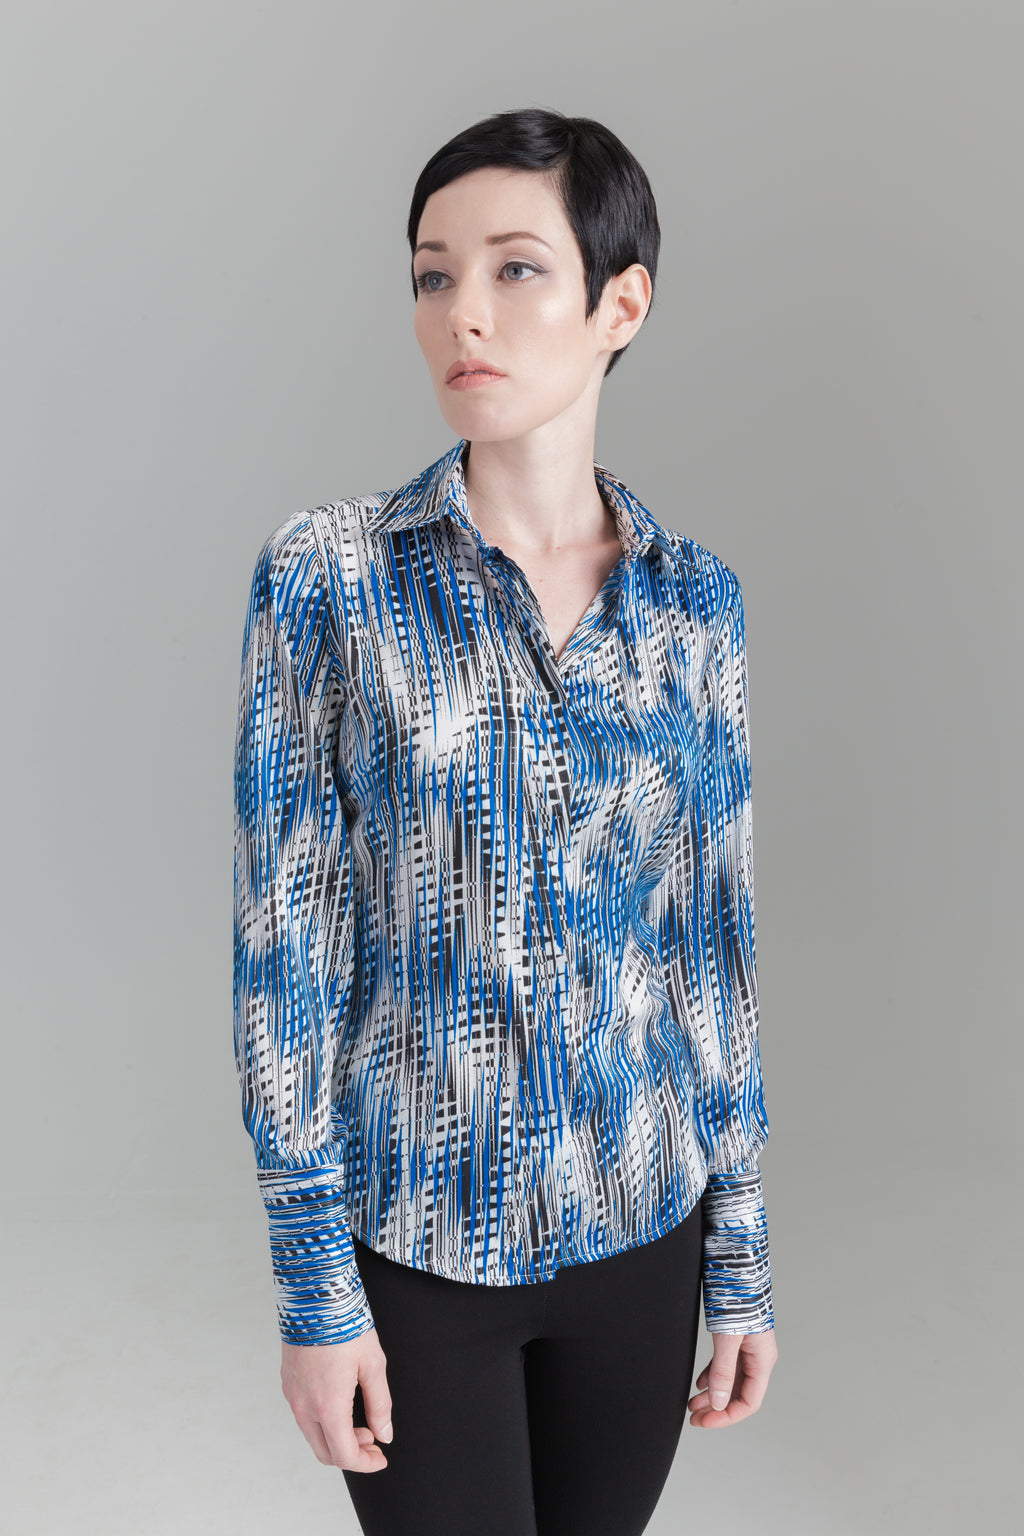 Urban Geometric Blouse - Farinaz Taghavi